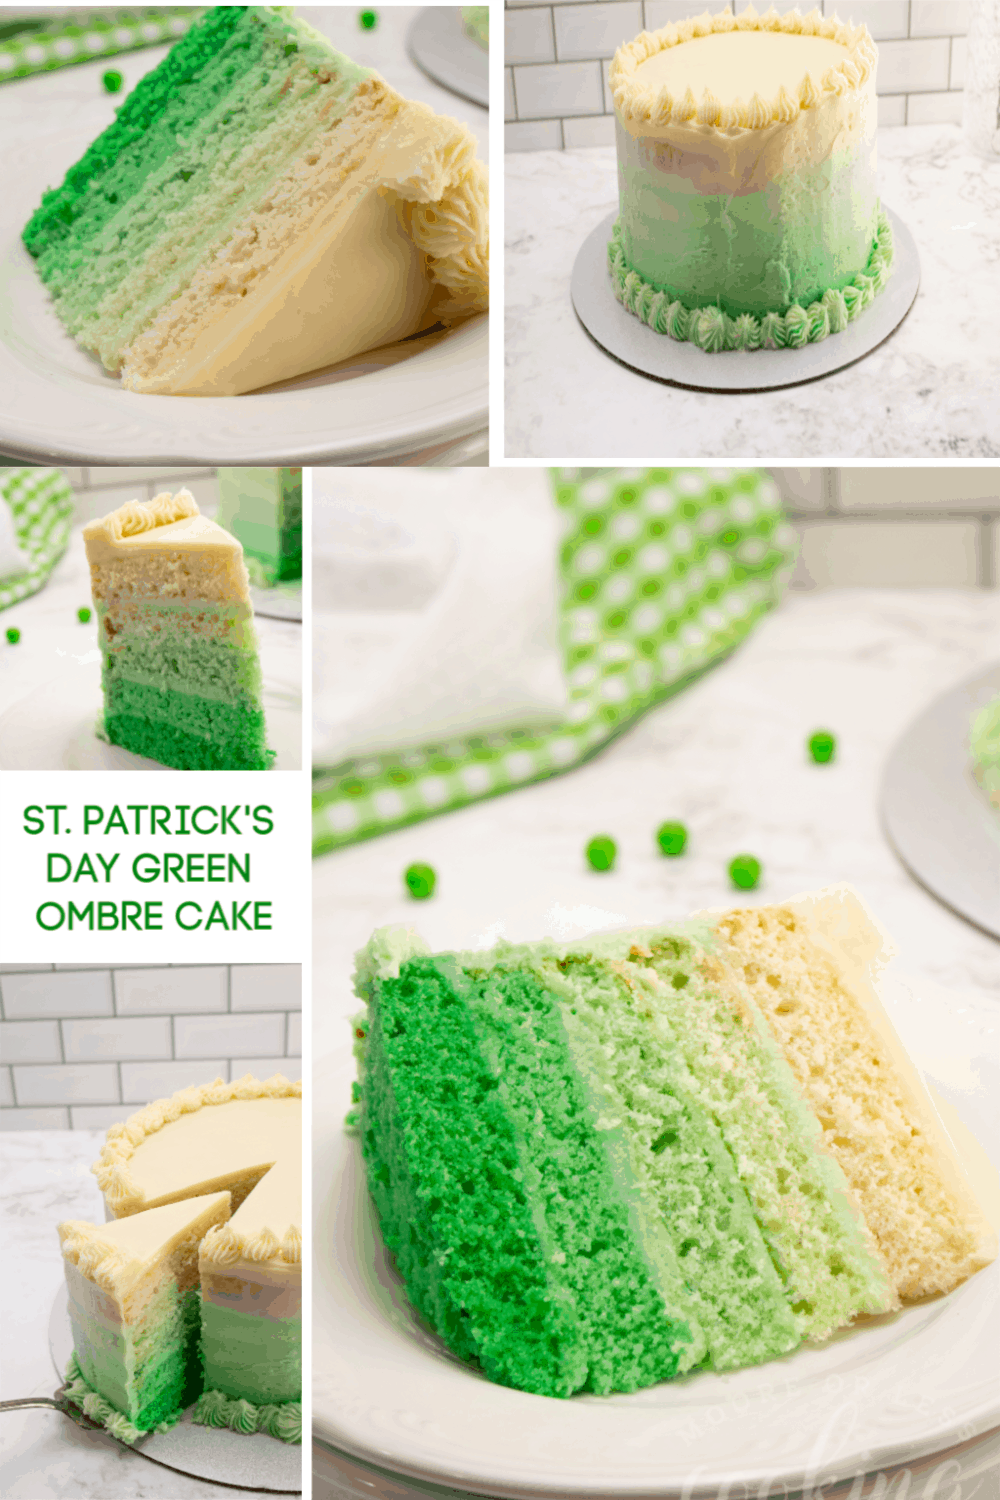 Are you looking to make something special for St. Patricks Day? Try making this beautiful St. Patrick's Day Green Ombre Cake and show off your baking skills! #Stpatricksdaycake #mooreorlesscooking via @Mooreorlesscook